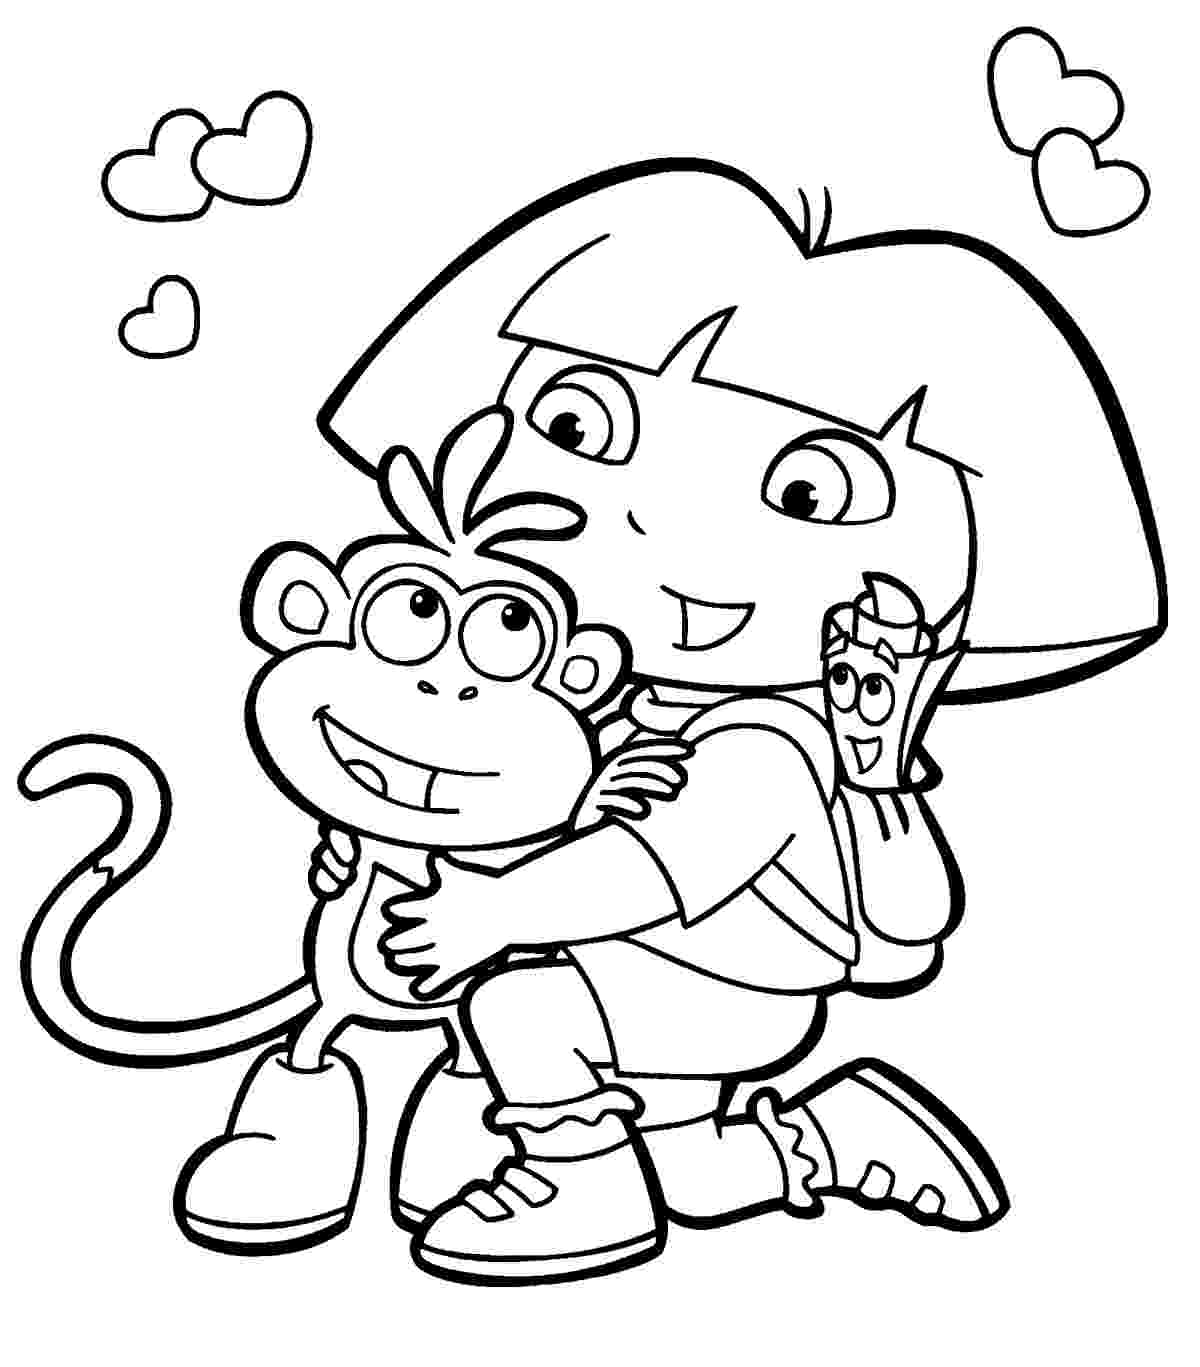 free dora the explorer coloring pages free printable dora the explorer coloring pages for kids free the explorer pages coloring dora